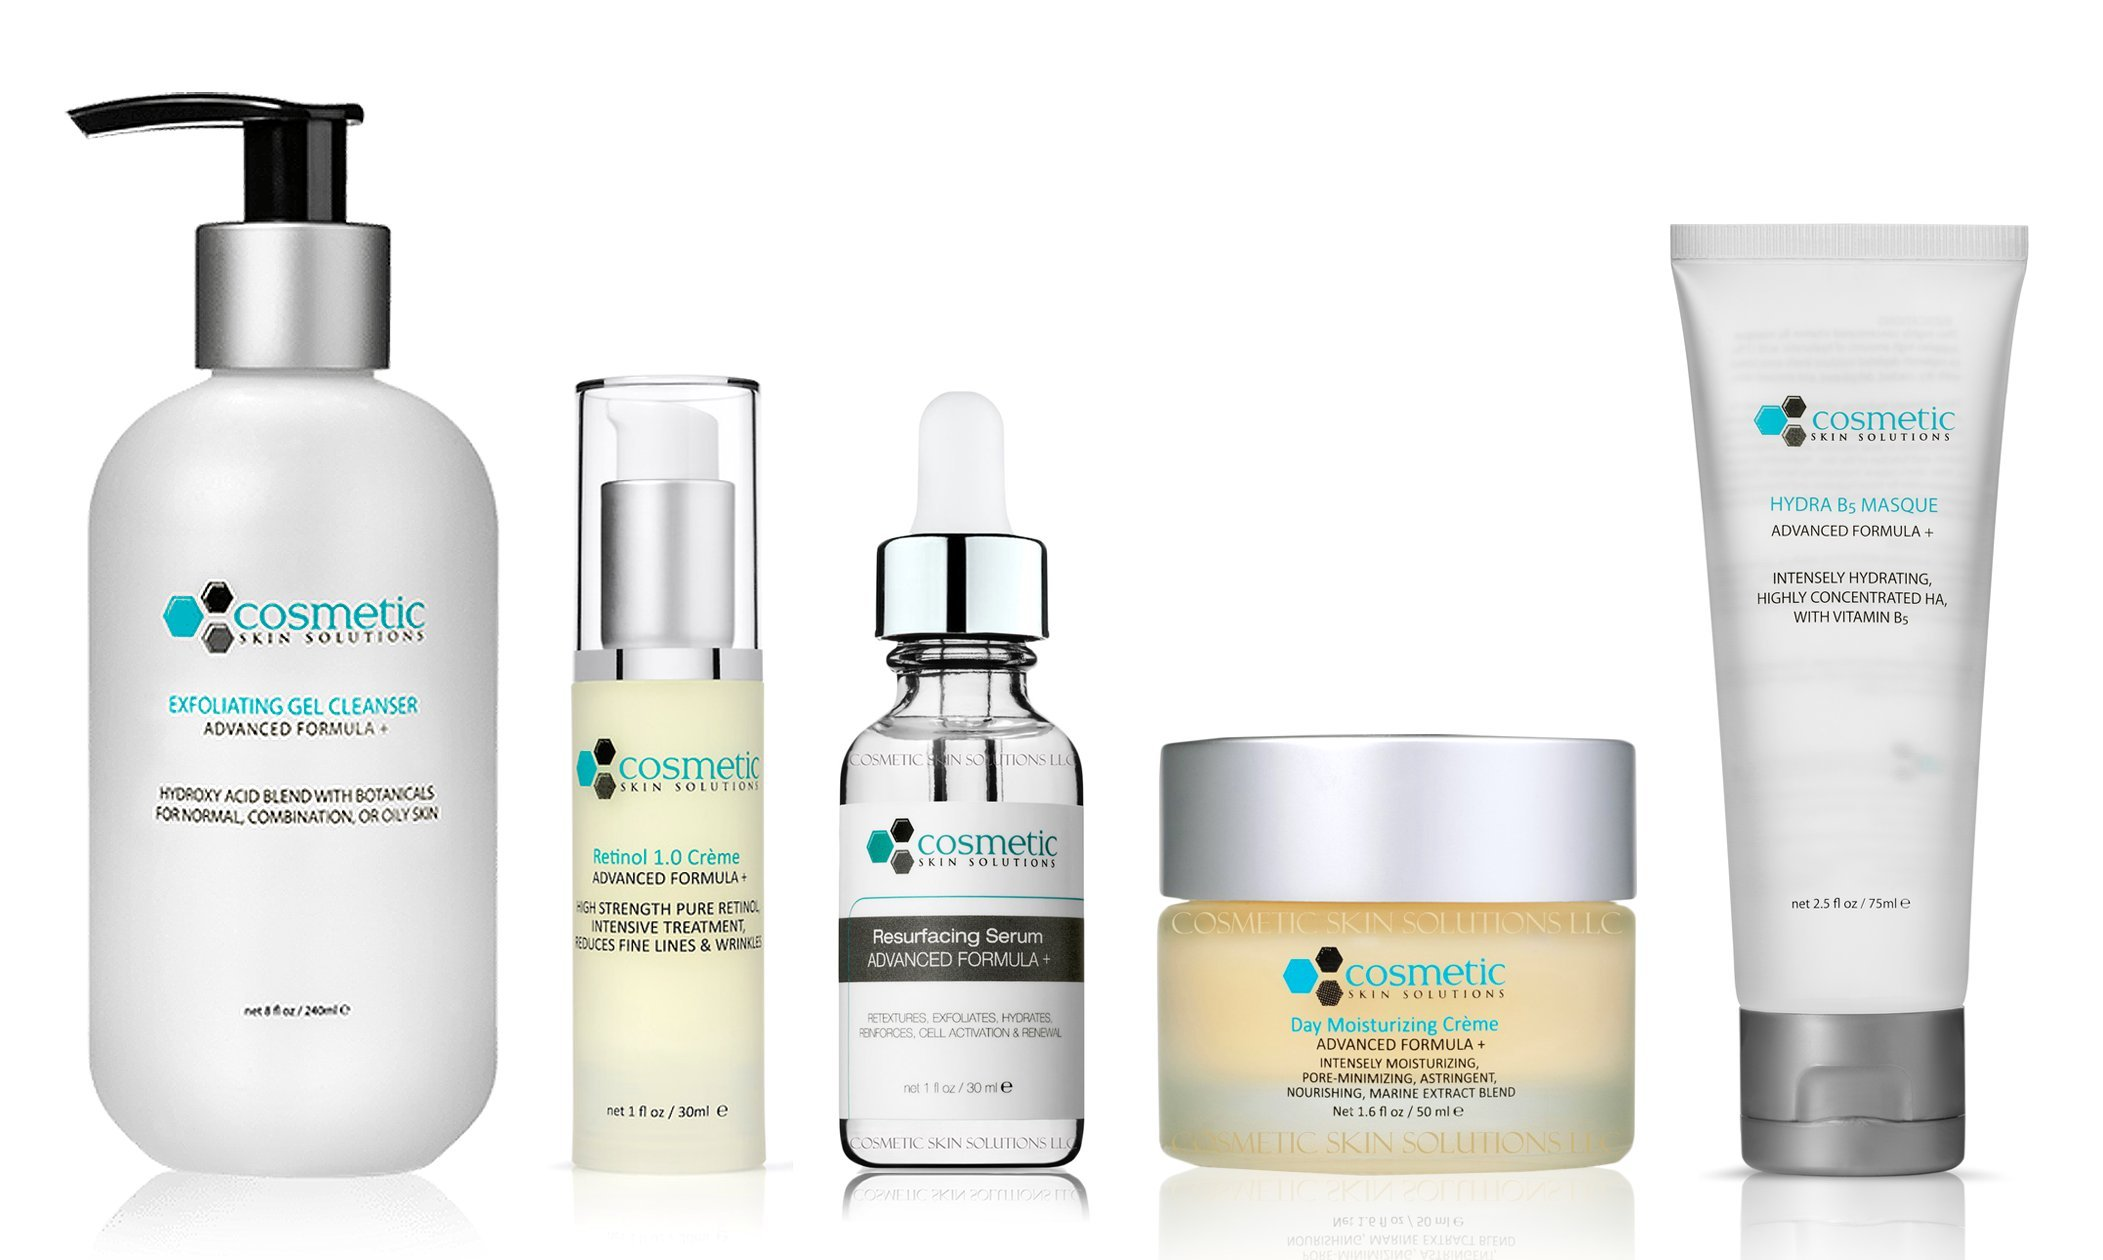 Cleanse | Correct | Resurface | Moisturize | Masque - 5 Combo Pack - Includes Luxurious Pore-refining Cleanser (8 oz), Retinol 1.0 (1 oz), Resurfacing Serum, Moisturizer, Intensely Hydrating B5 Masque